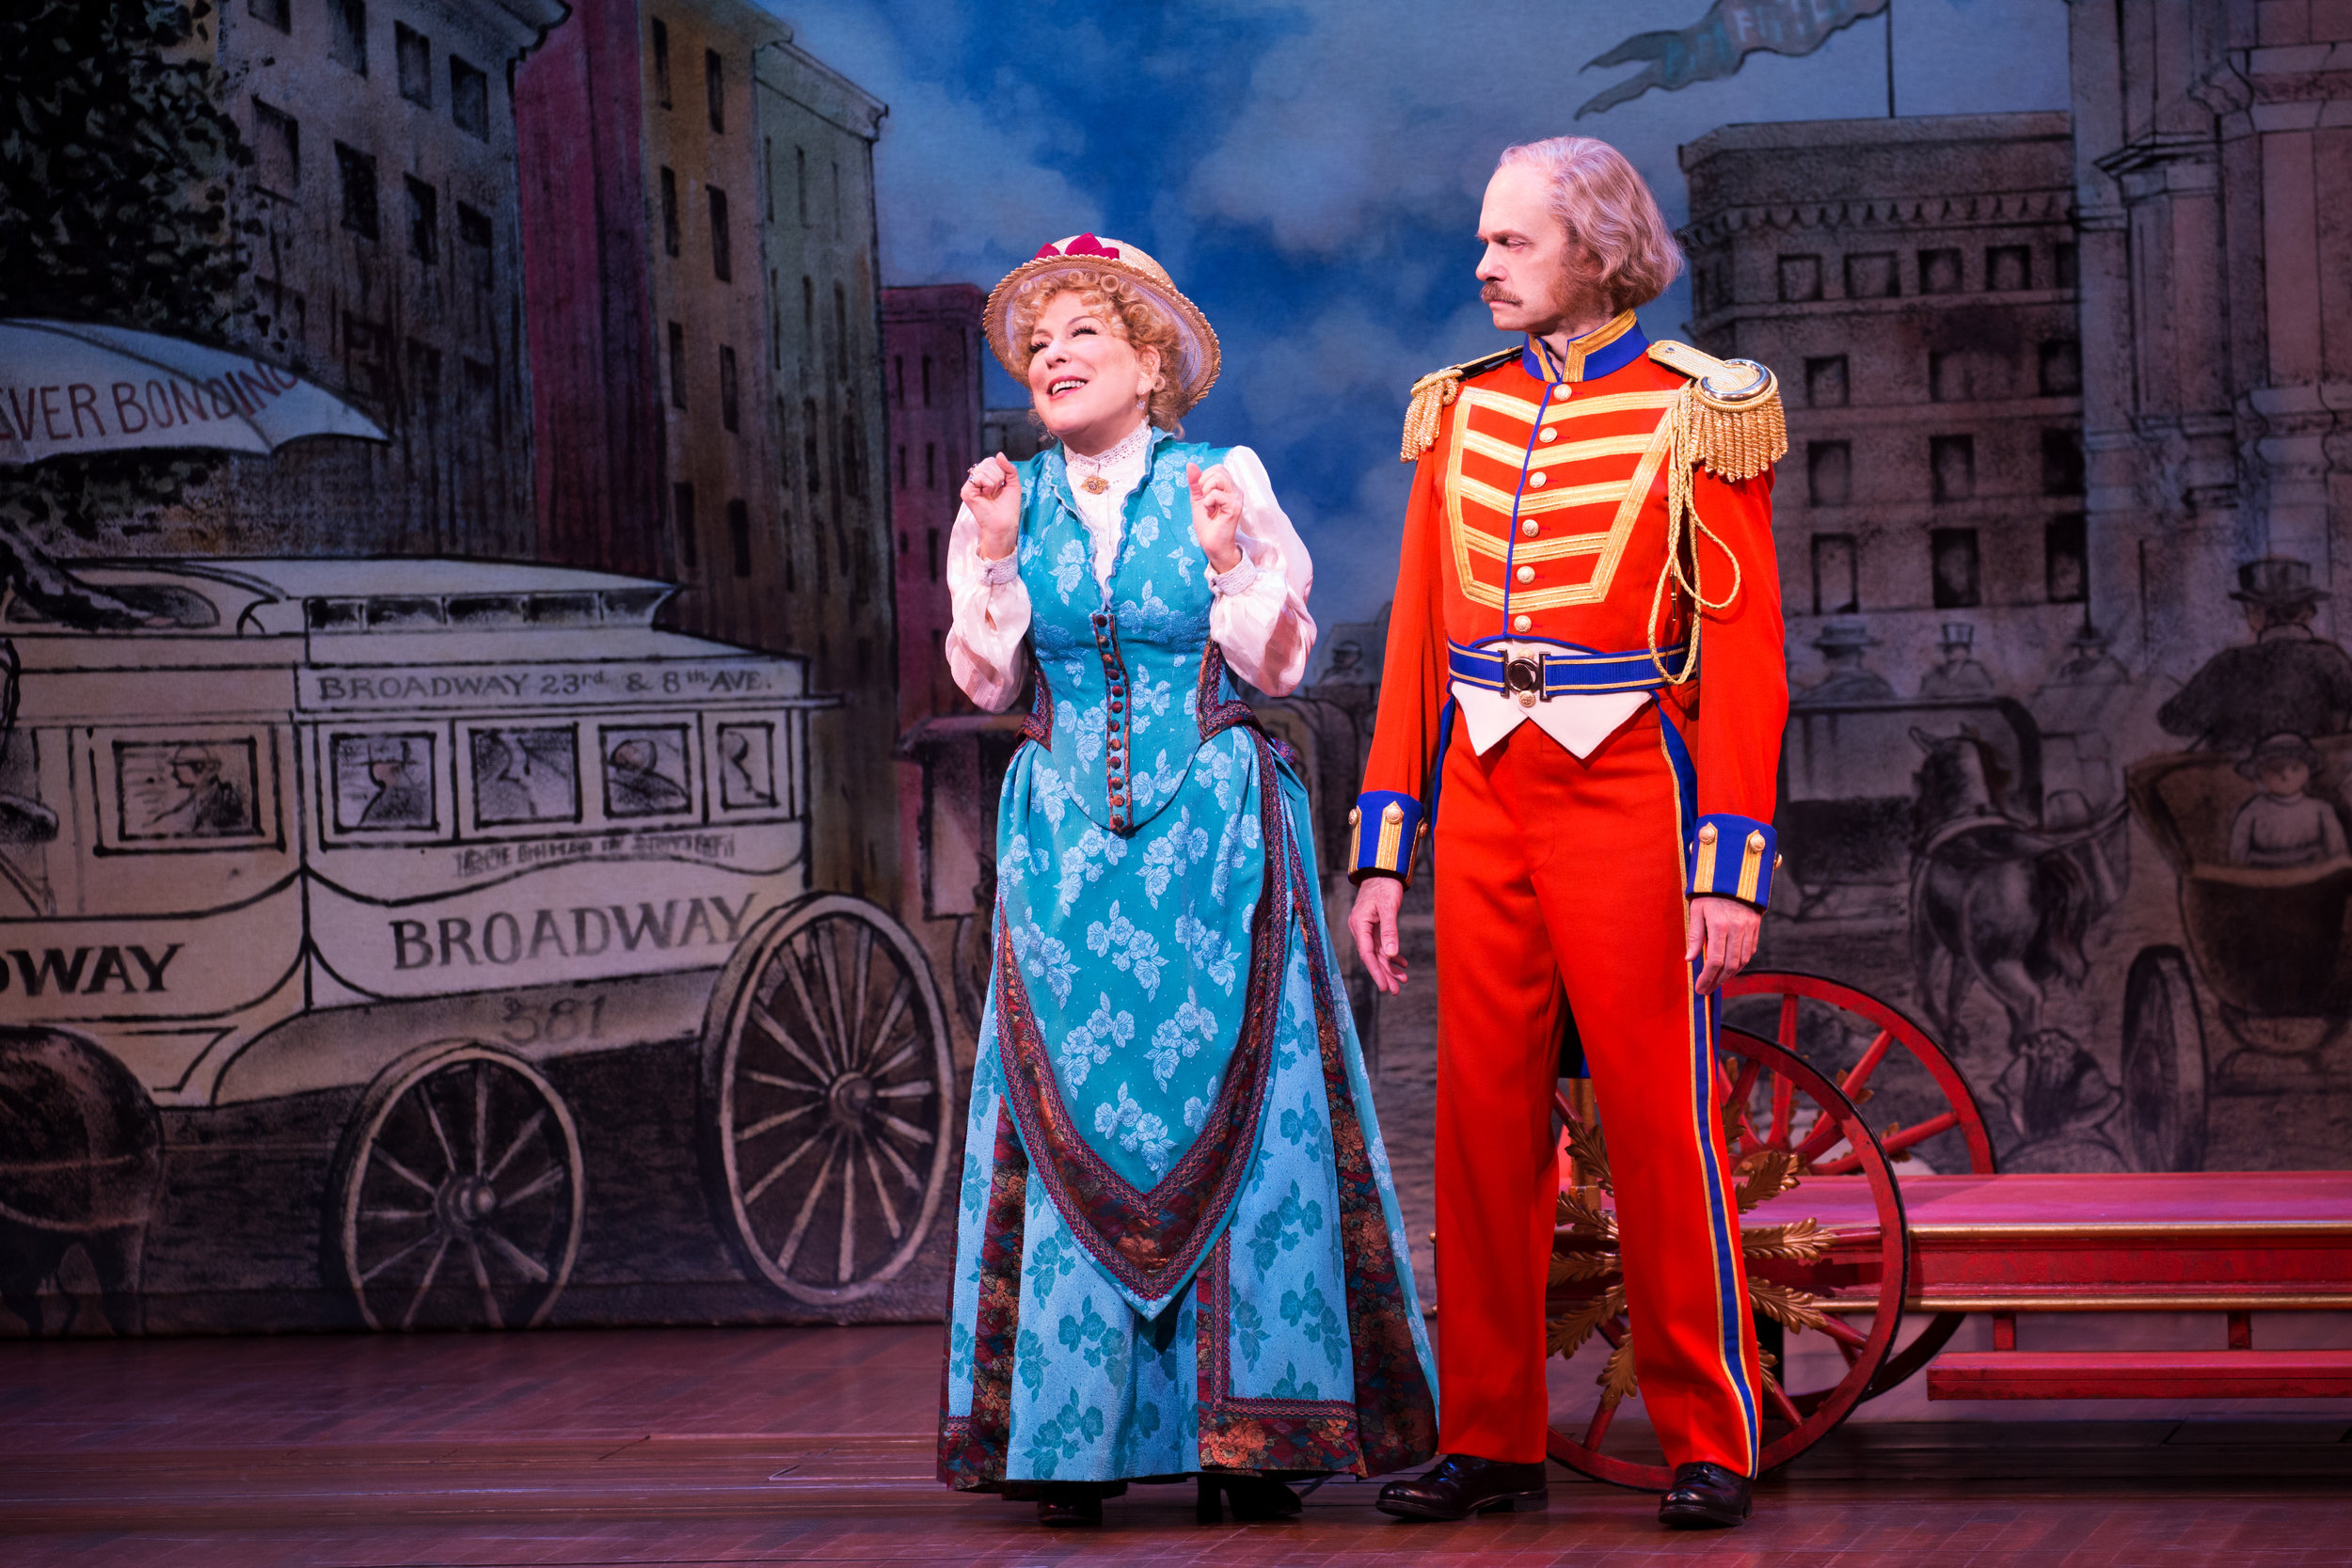 6_3_Bette-Midler-and-David-Hyde-Pierce-in-HELLO-DOLLY-Photo-by-Julieta-Cervantes.jpg